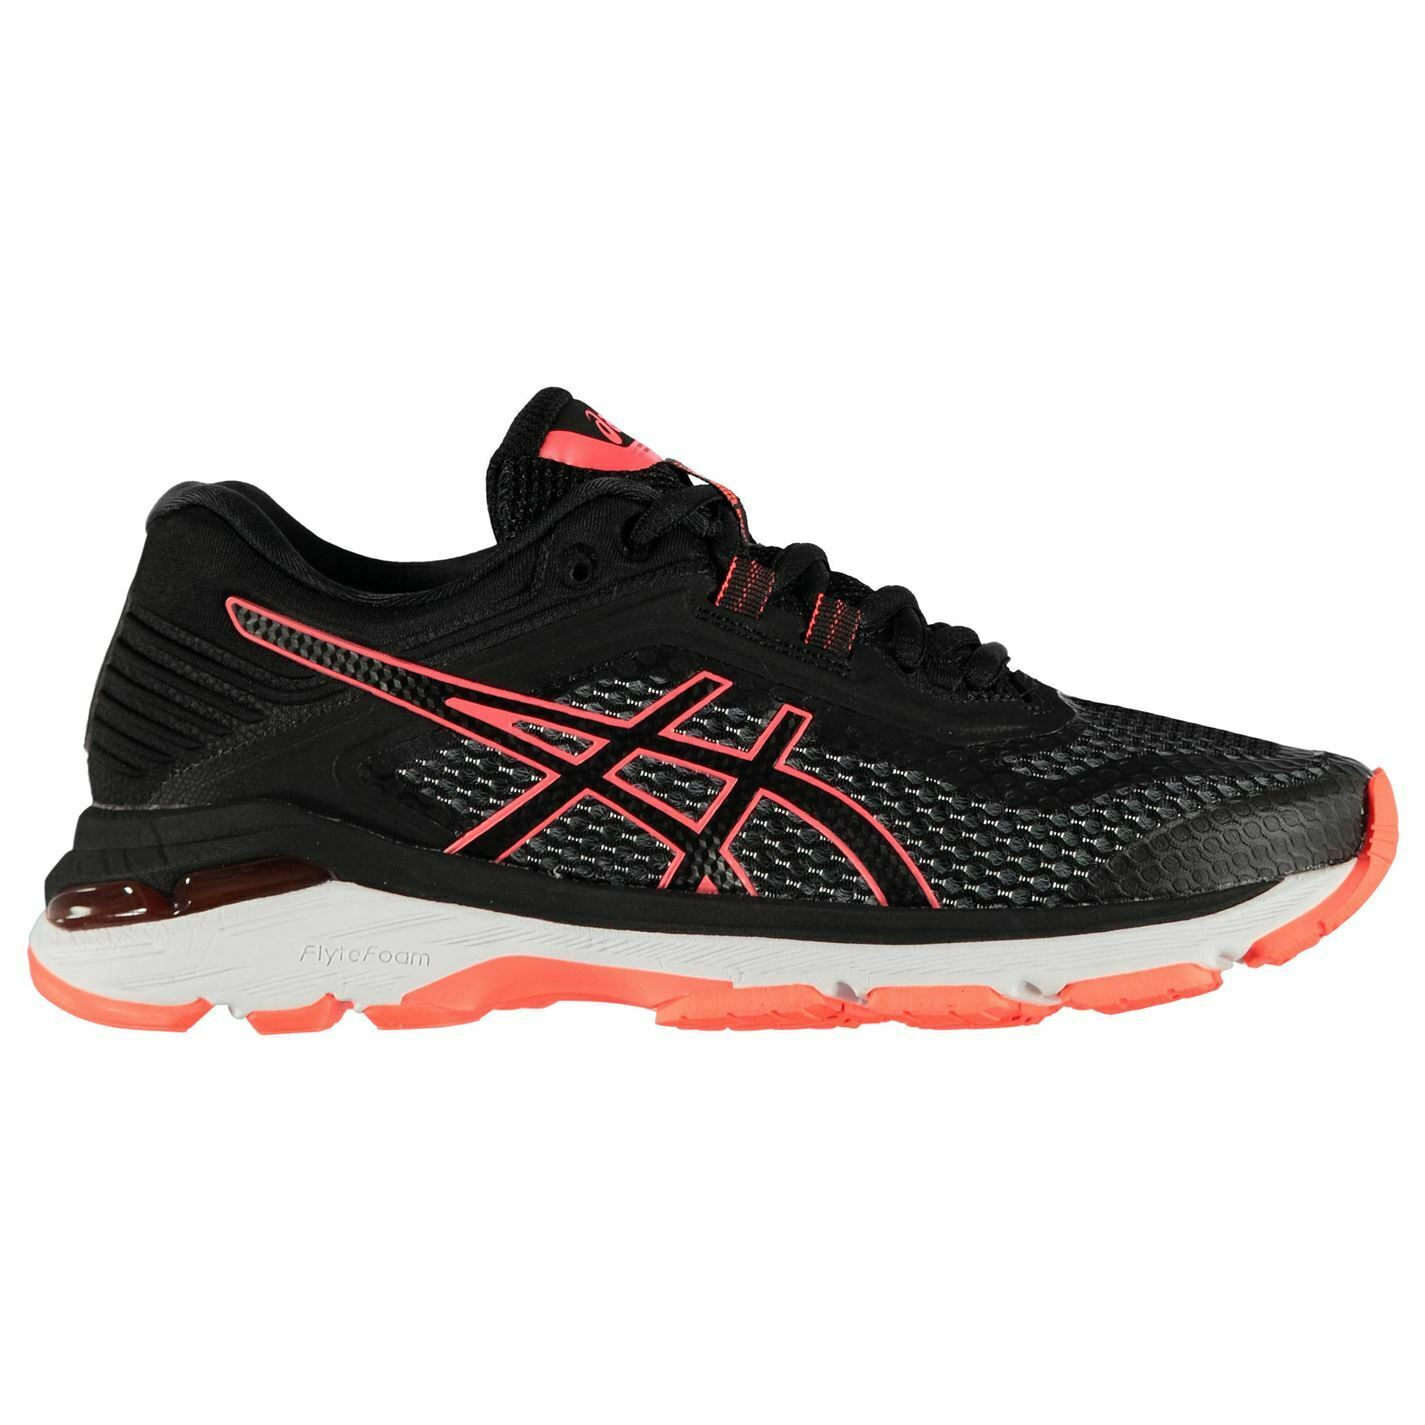 Asics GT 2000v6 Running shoes Ladies Road Laces Fastened Ventilated Padded Ankle